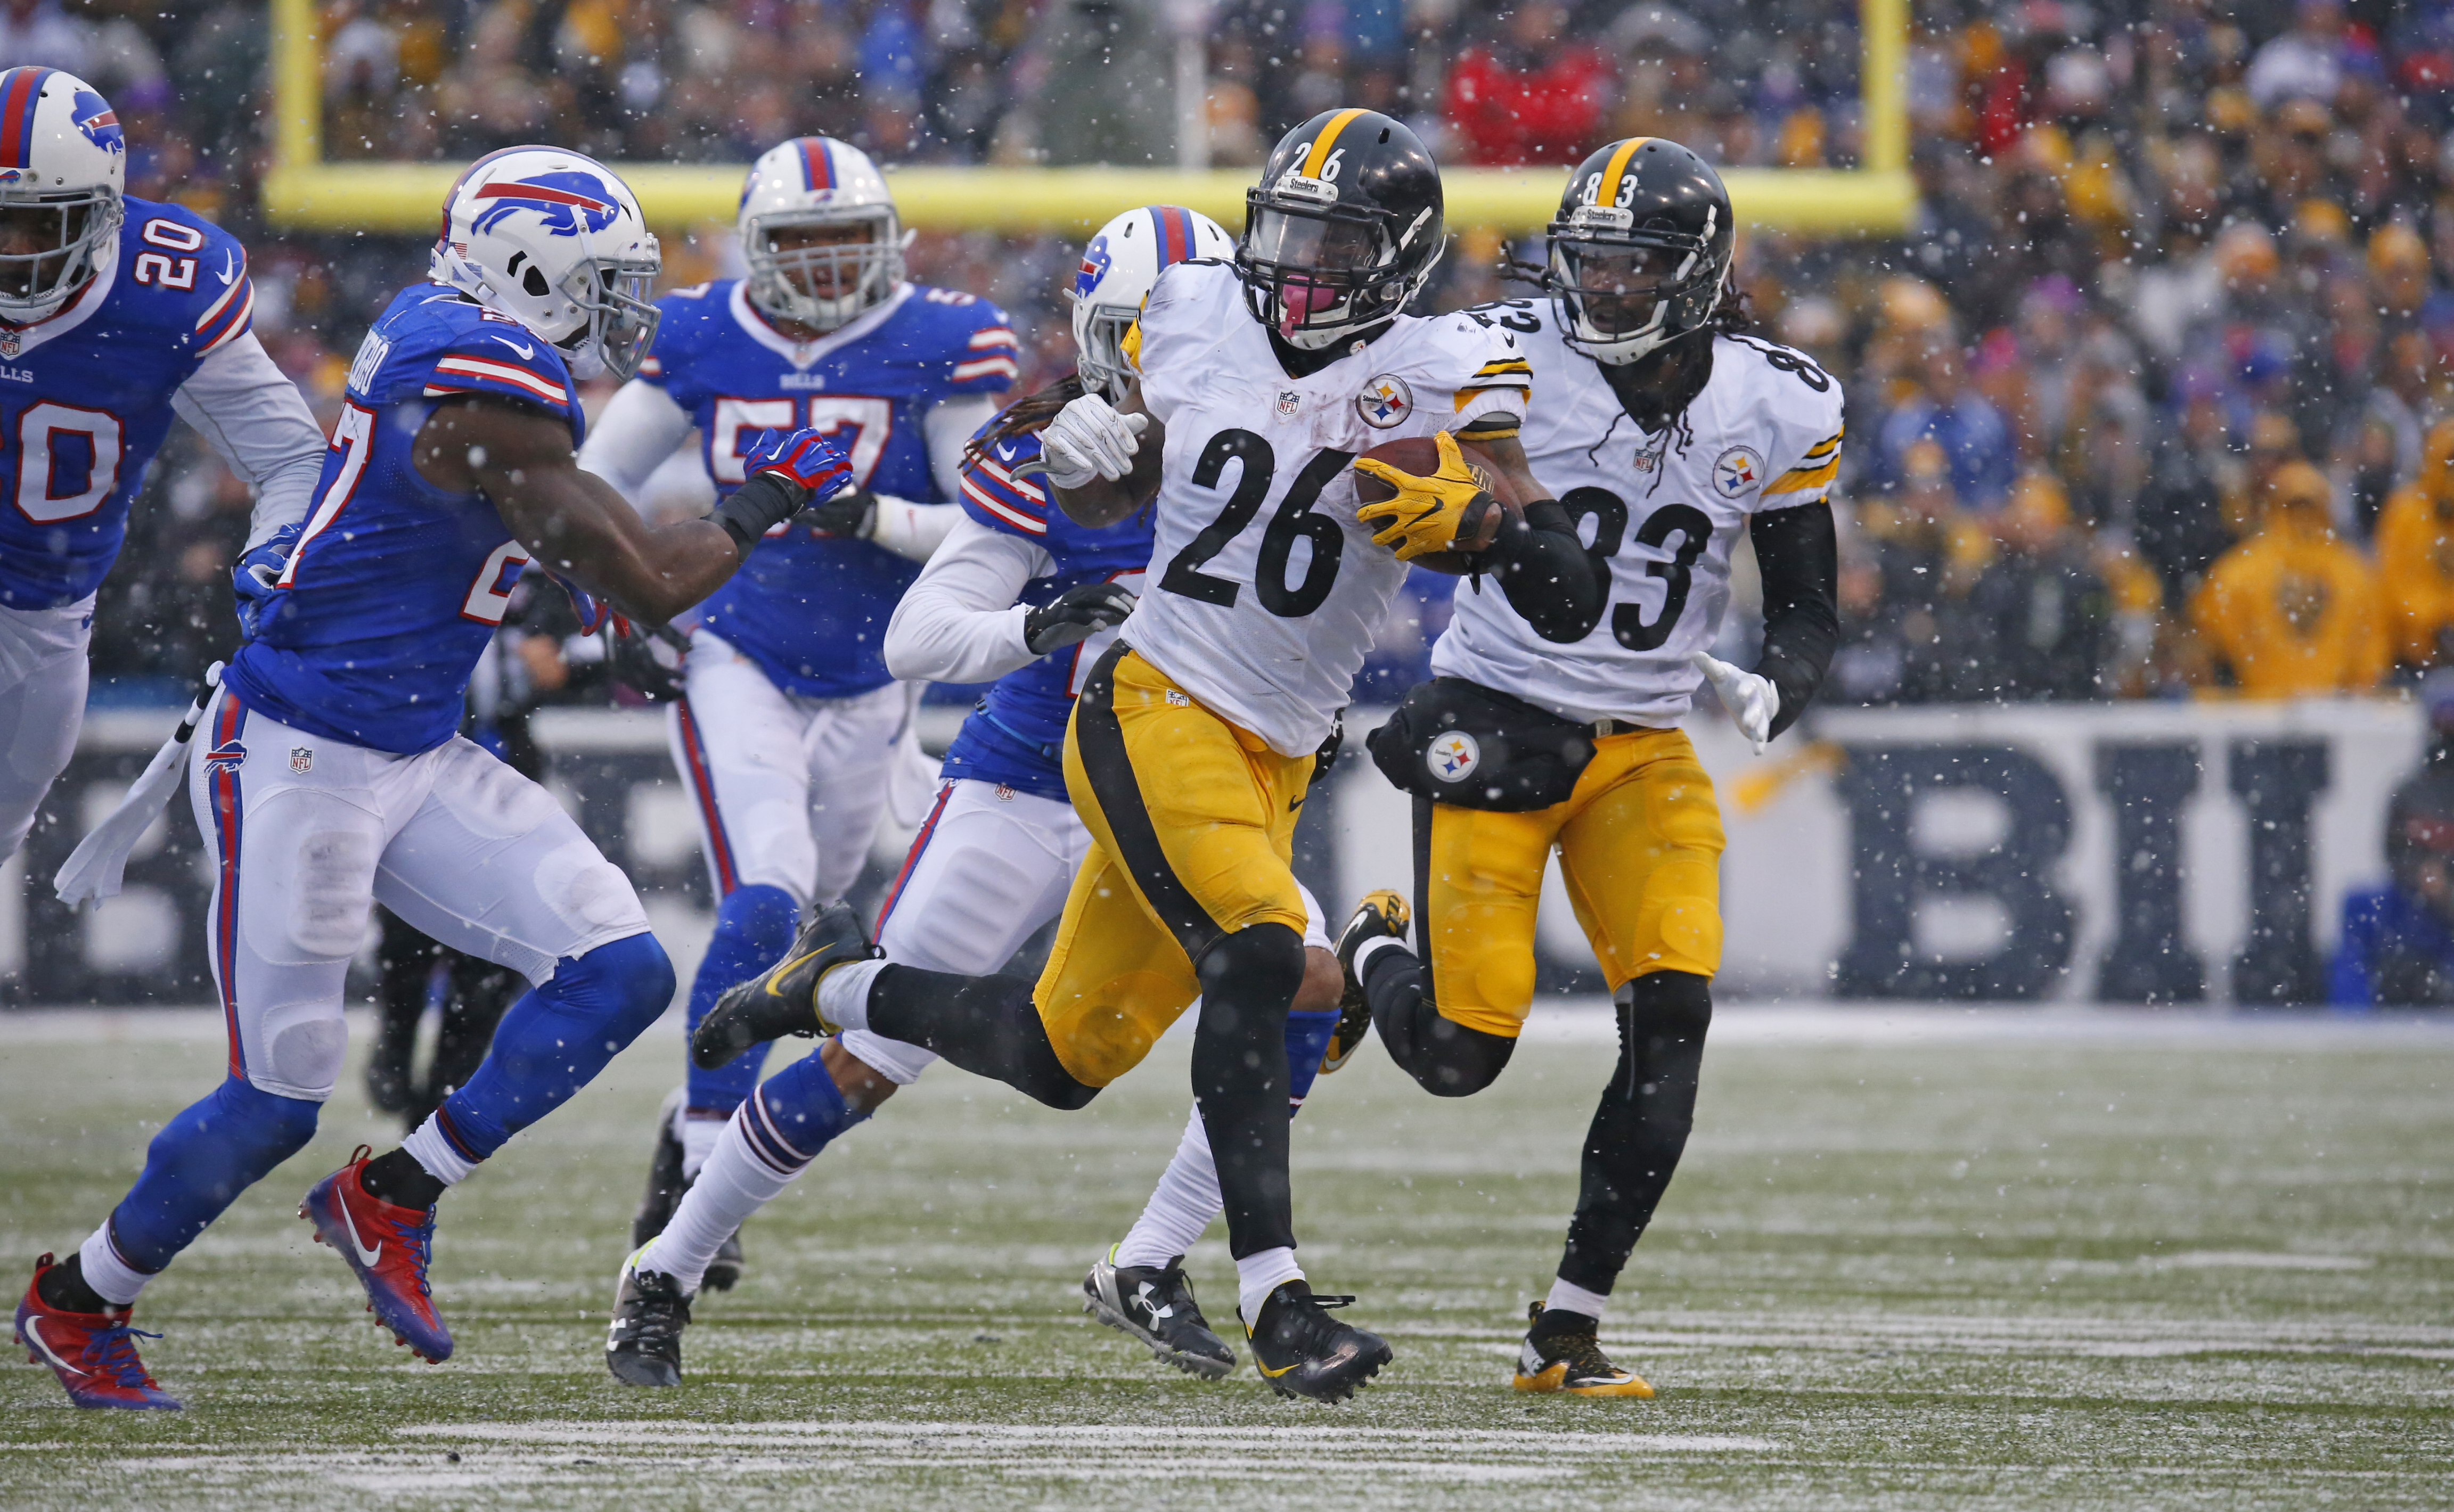 """Pittsburgh Steelers running back Le""""Veon Bell runs against the Buffalo Bills during third quarter action Sunday at New Era Field. (Harry Scull Jr./Buffalo News)"""